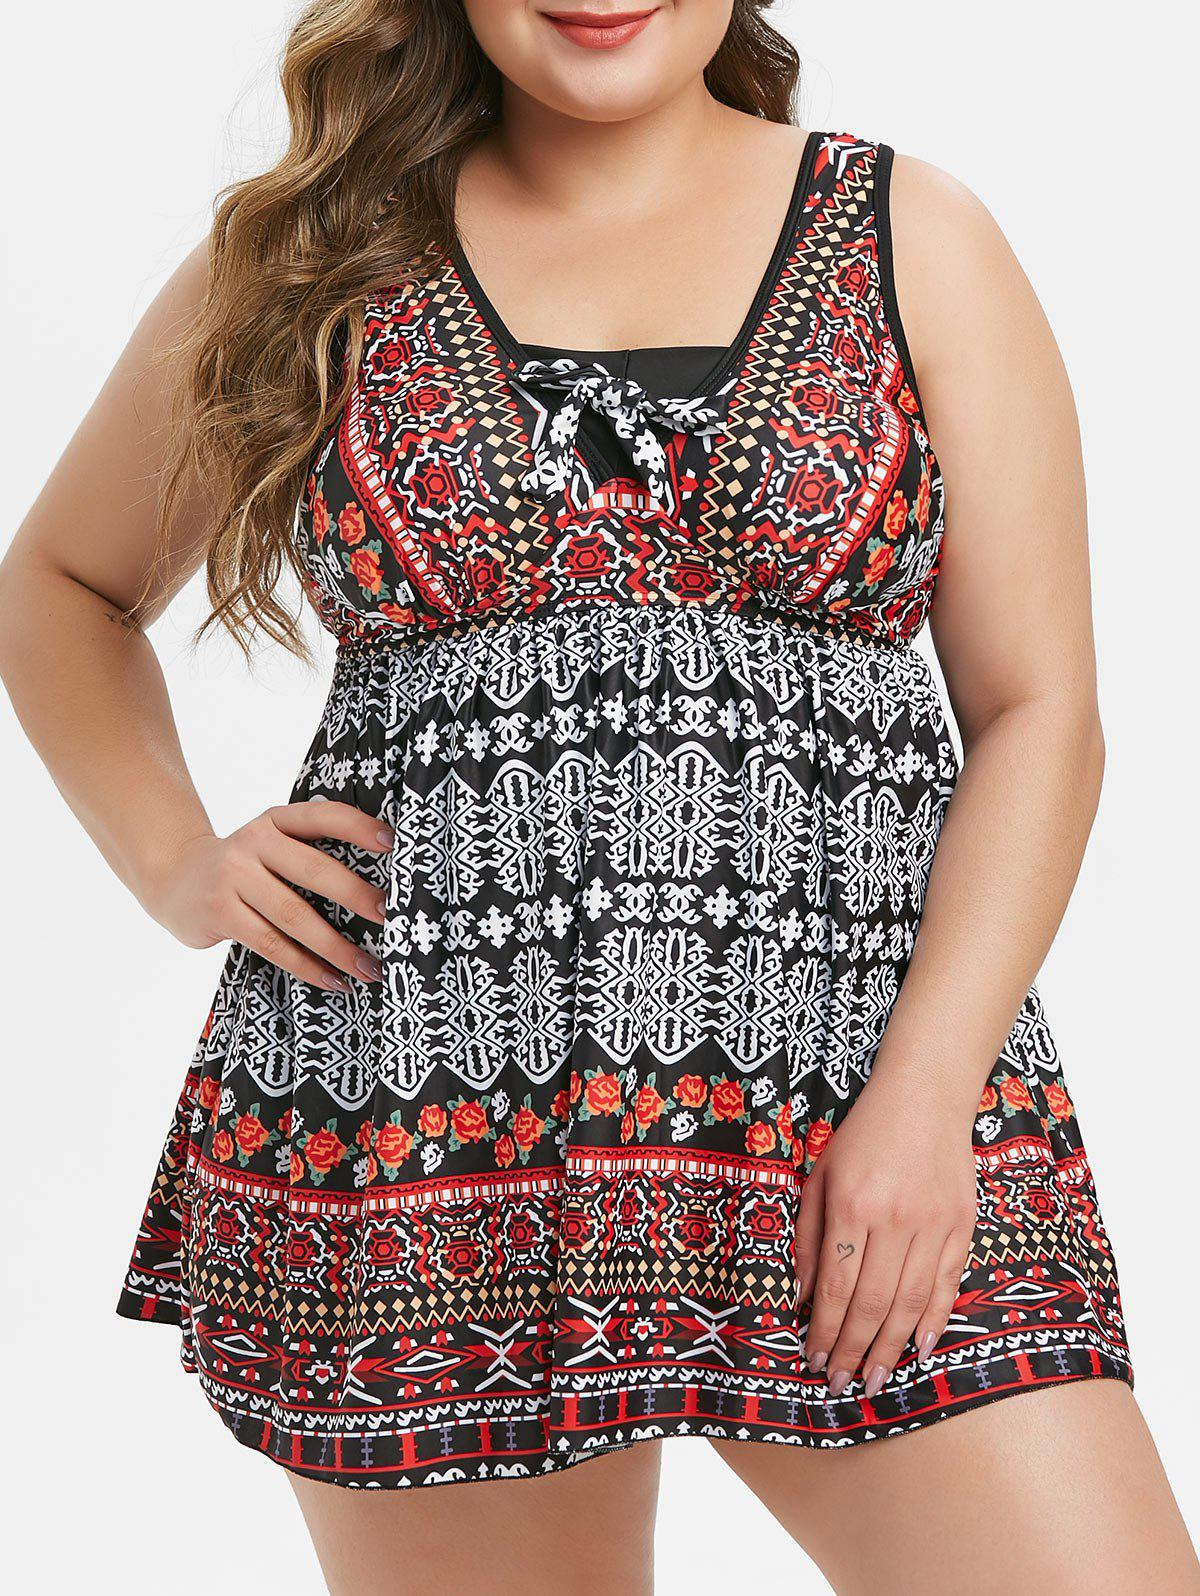 Shops Ethnic Floral Printed Plus Size Tankini Swimsuit